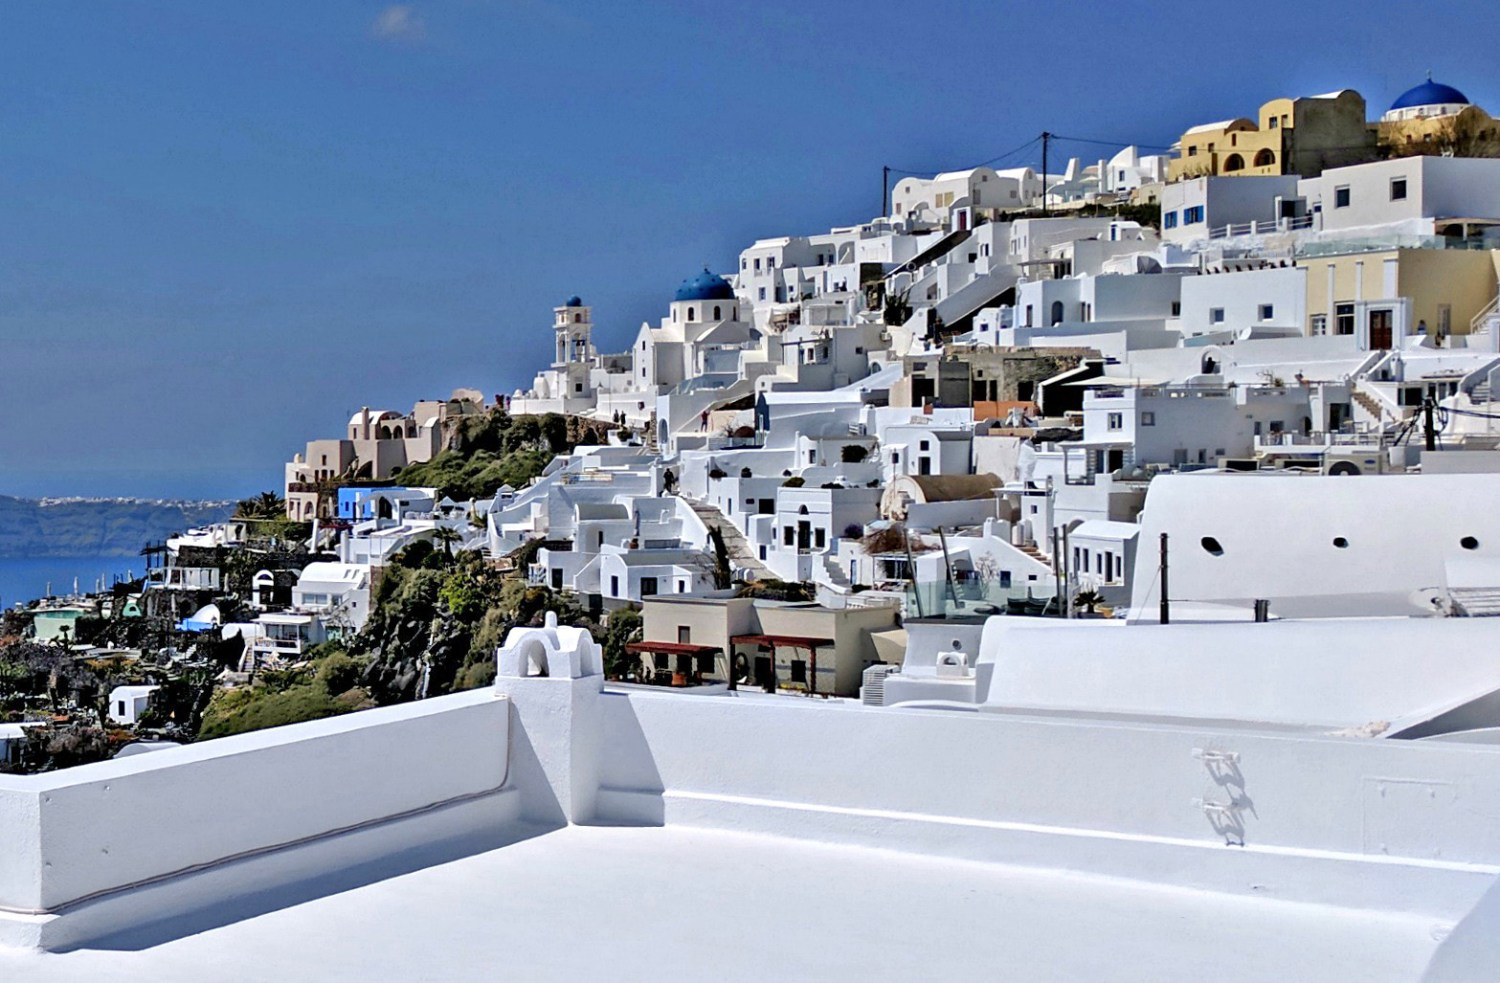 Imerovigli, not as famous as Oia, stand on its own as a stunning destination - the view.